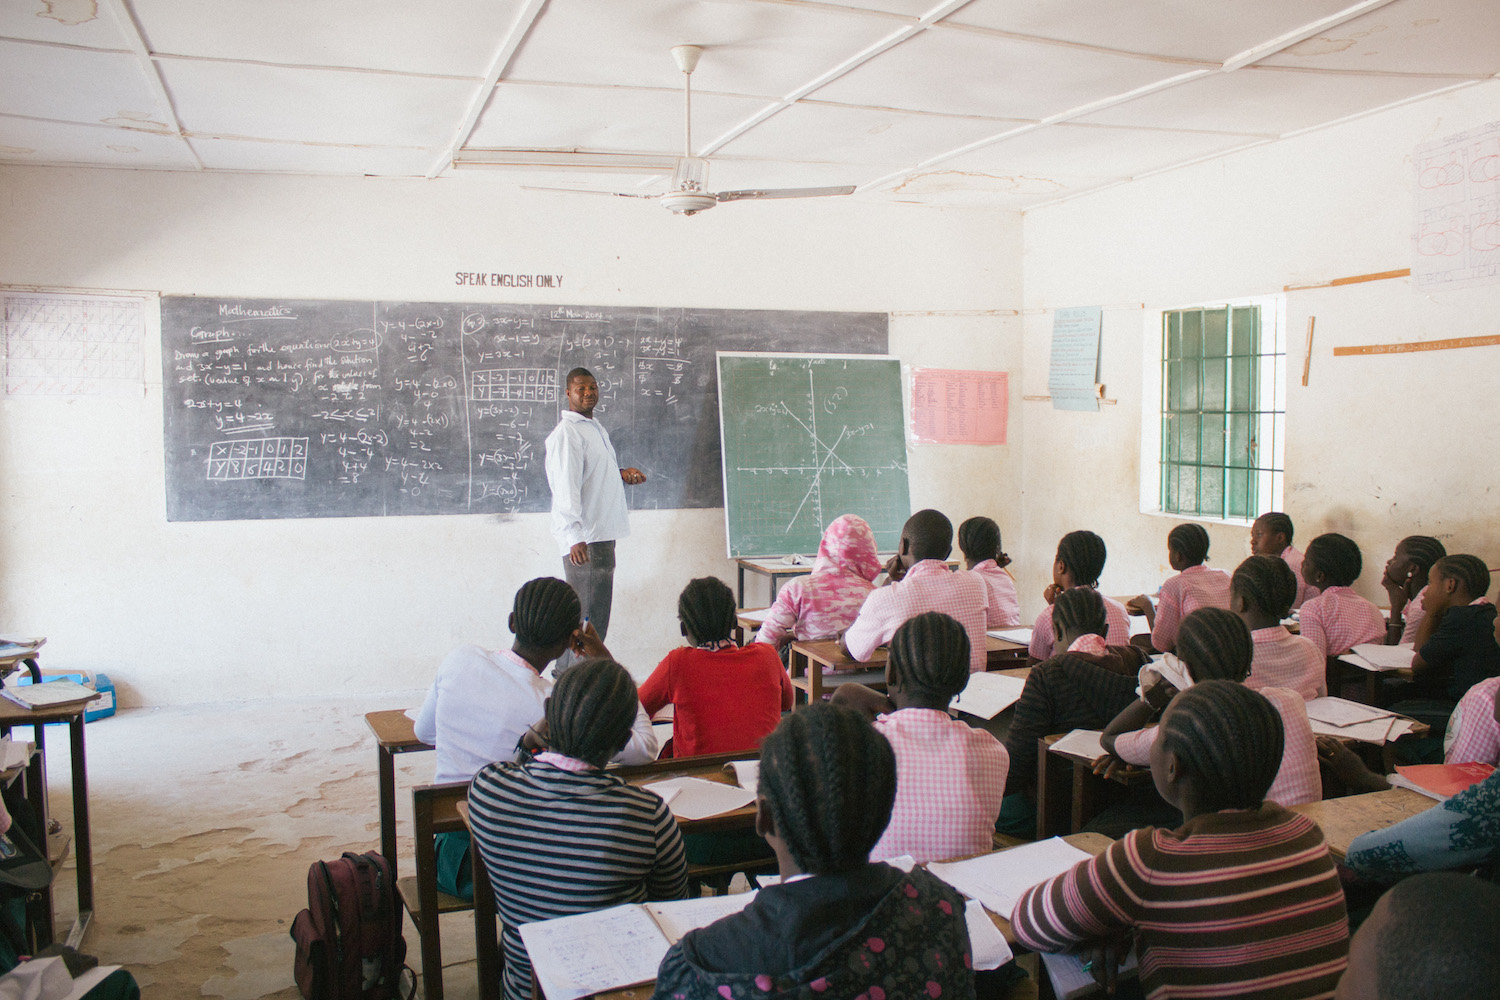 A typical classroom scene